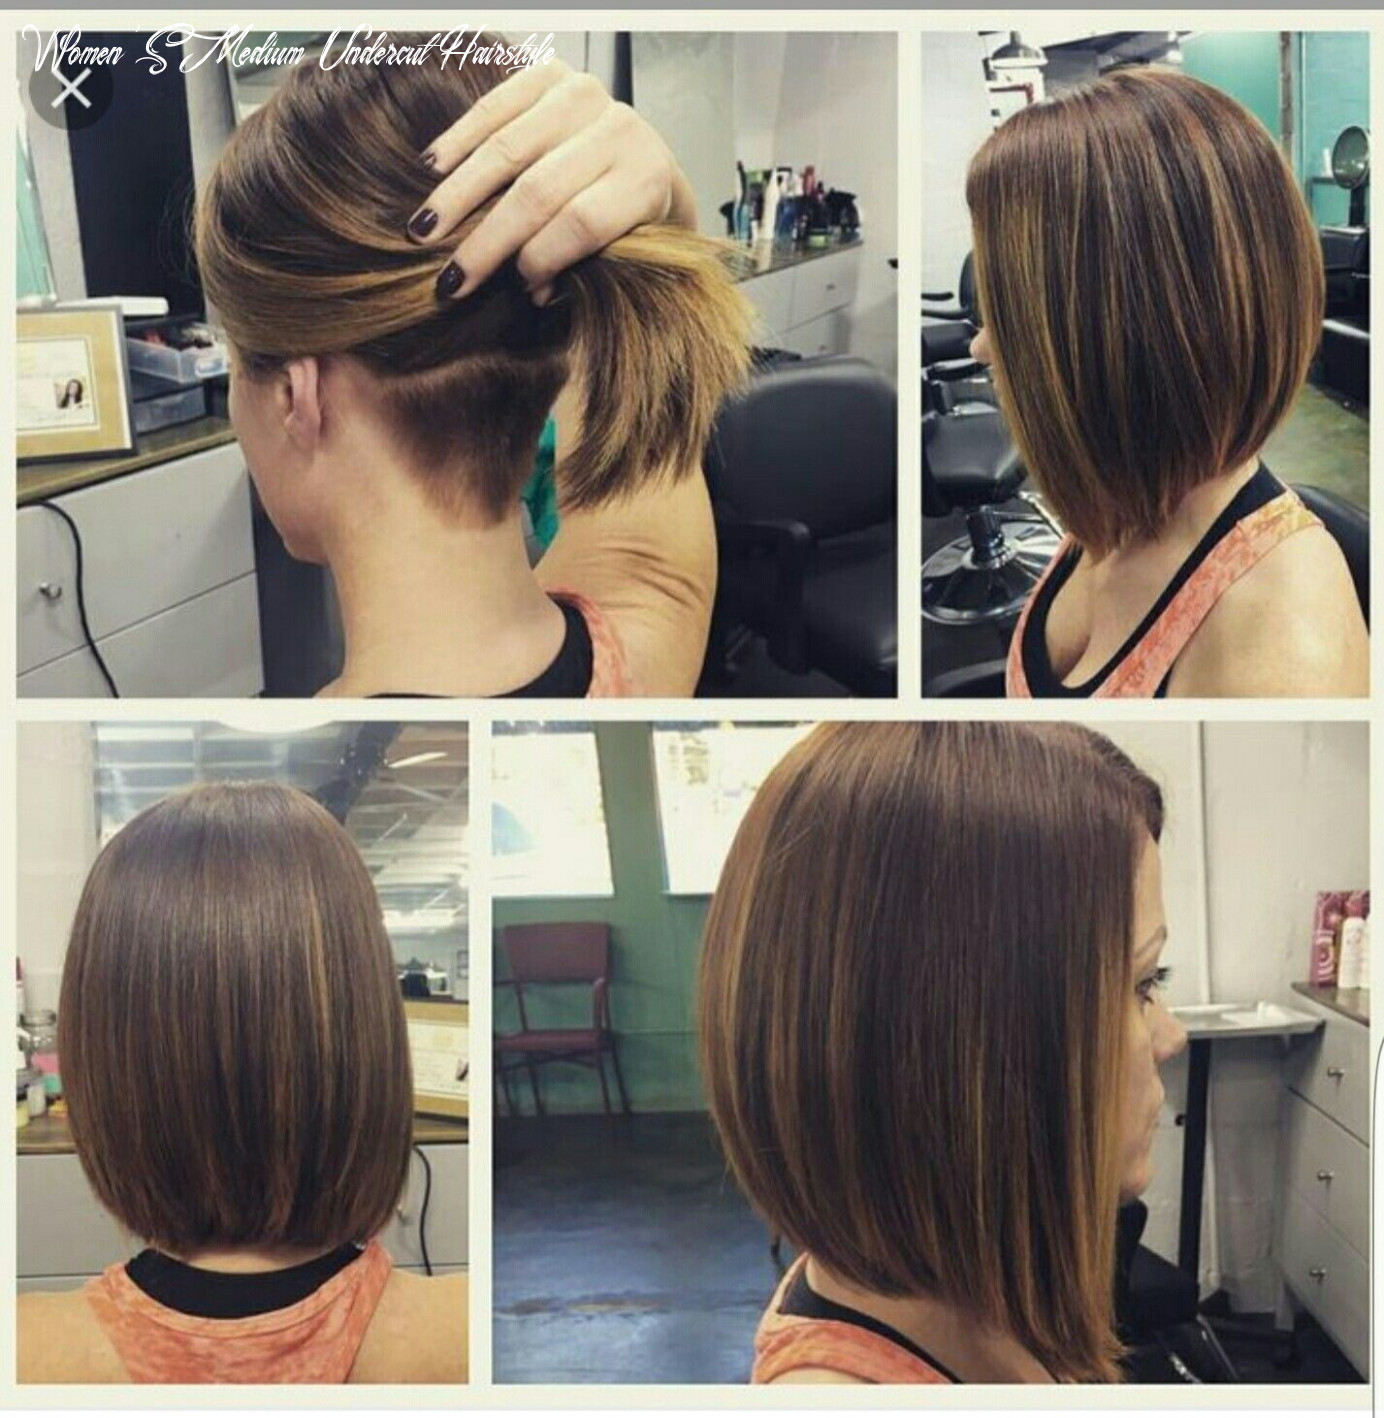 Pin by mary cowardin on haircuts | undercut long hair, undercut